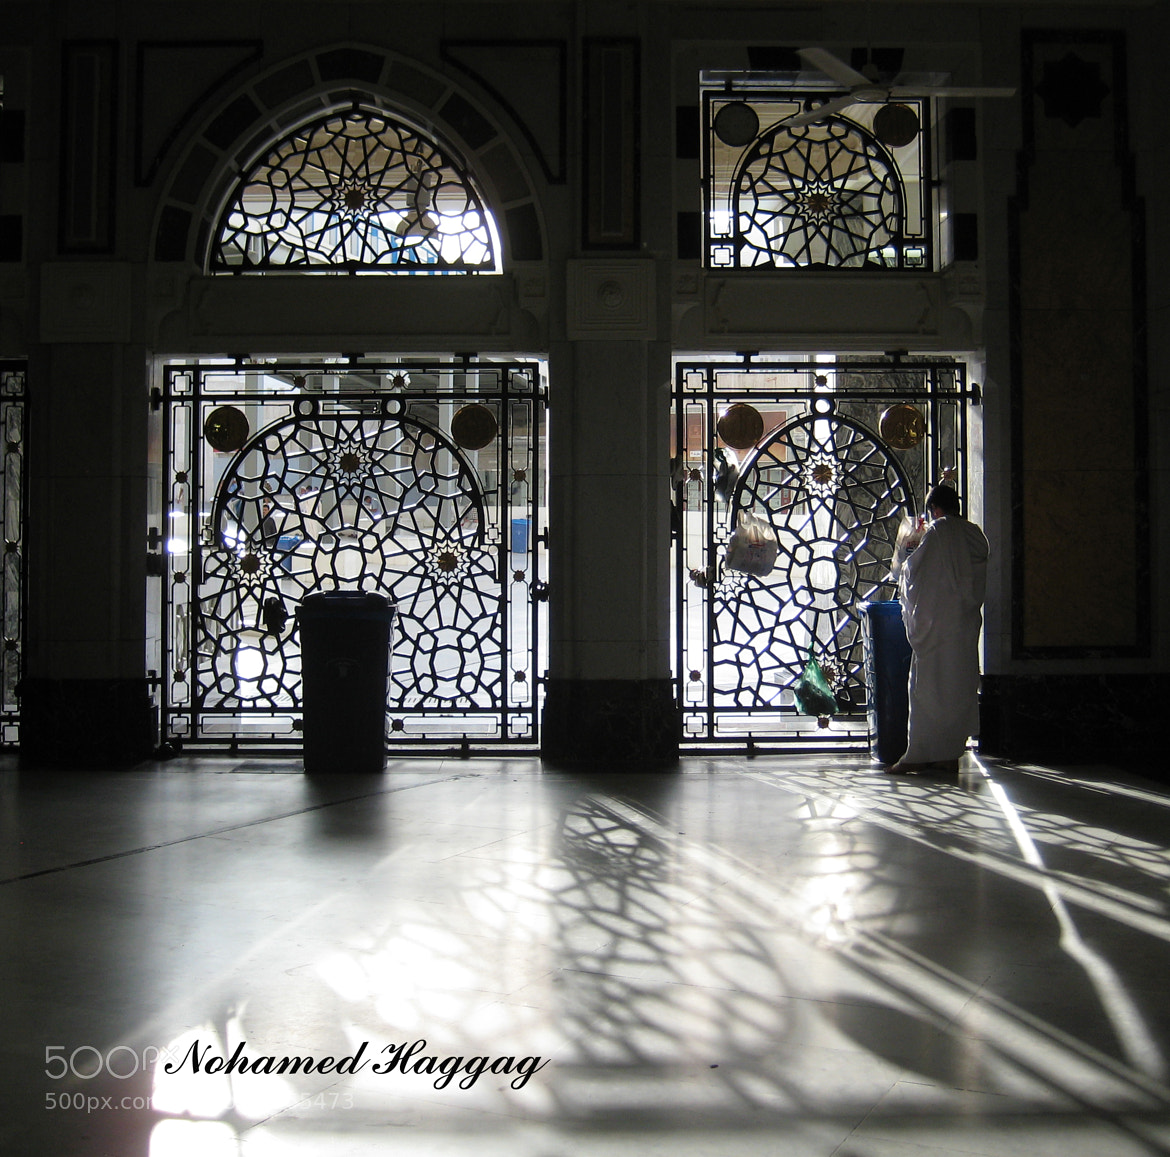 Photograph maka111 by Mohamed  Haggag on 500px